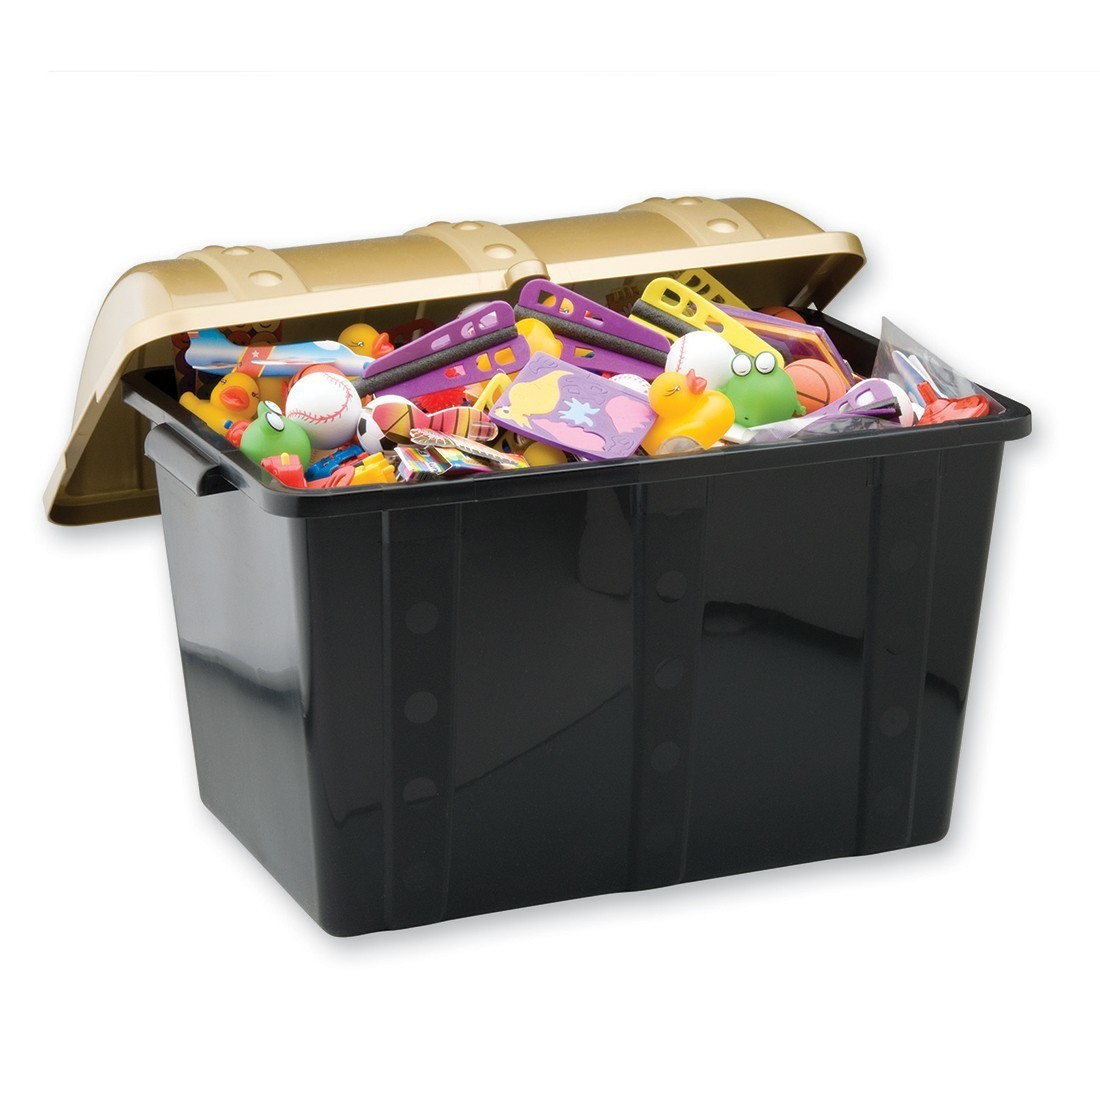 Super Sized Plastic Treasure Chest [image]